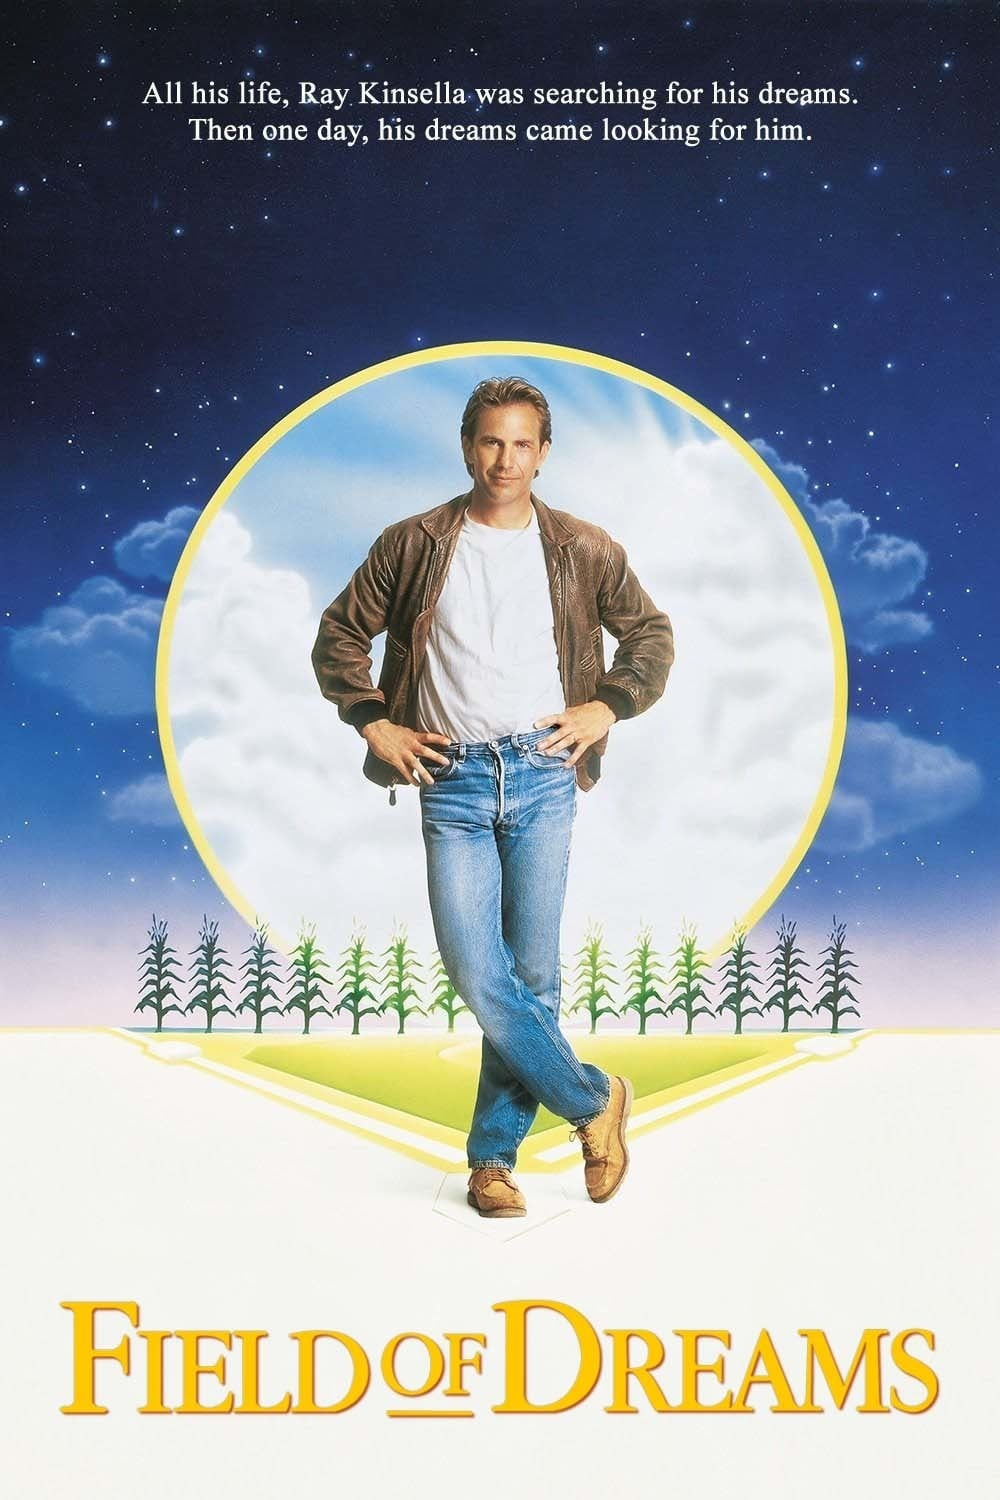 an analysis of the ray kinsella in the movie field of dreams directed by phil alden Field of dreams iowa farmer ray kinsella hears a voice in his corn field tell him download field of dreams 1989 movie also known as baseball álmok phil alden robinson release date: 21 april 1989 genre.